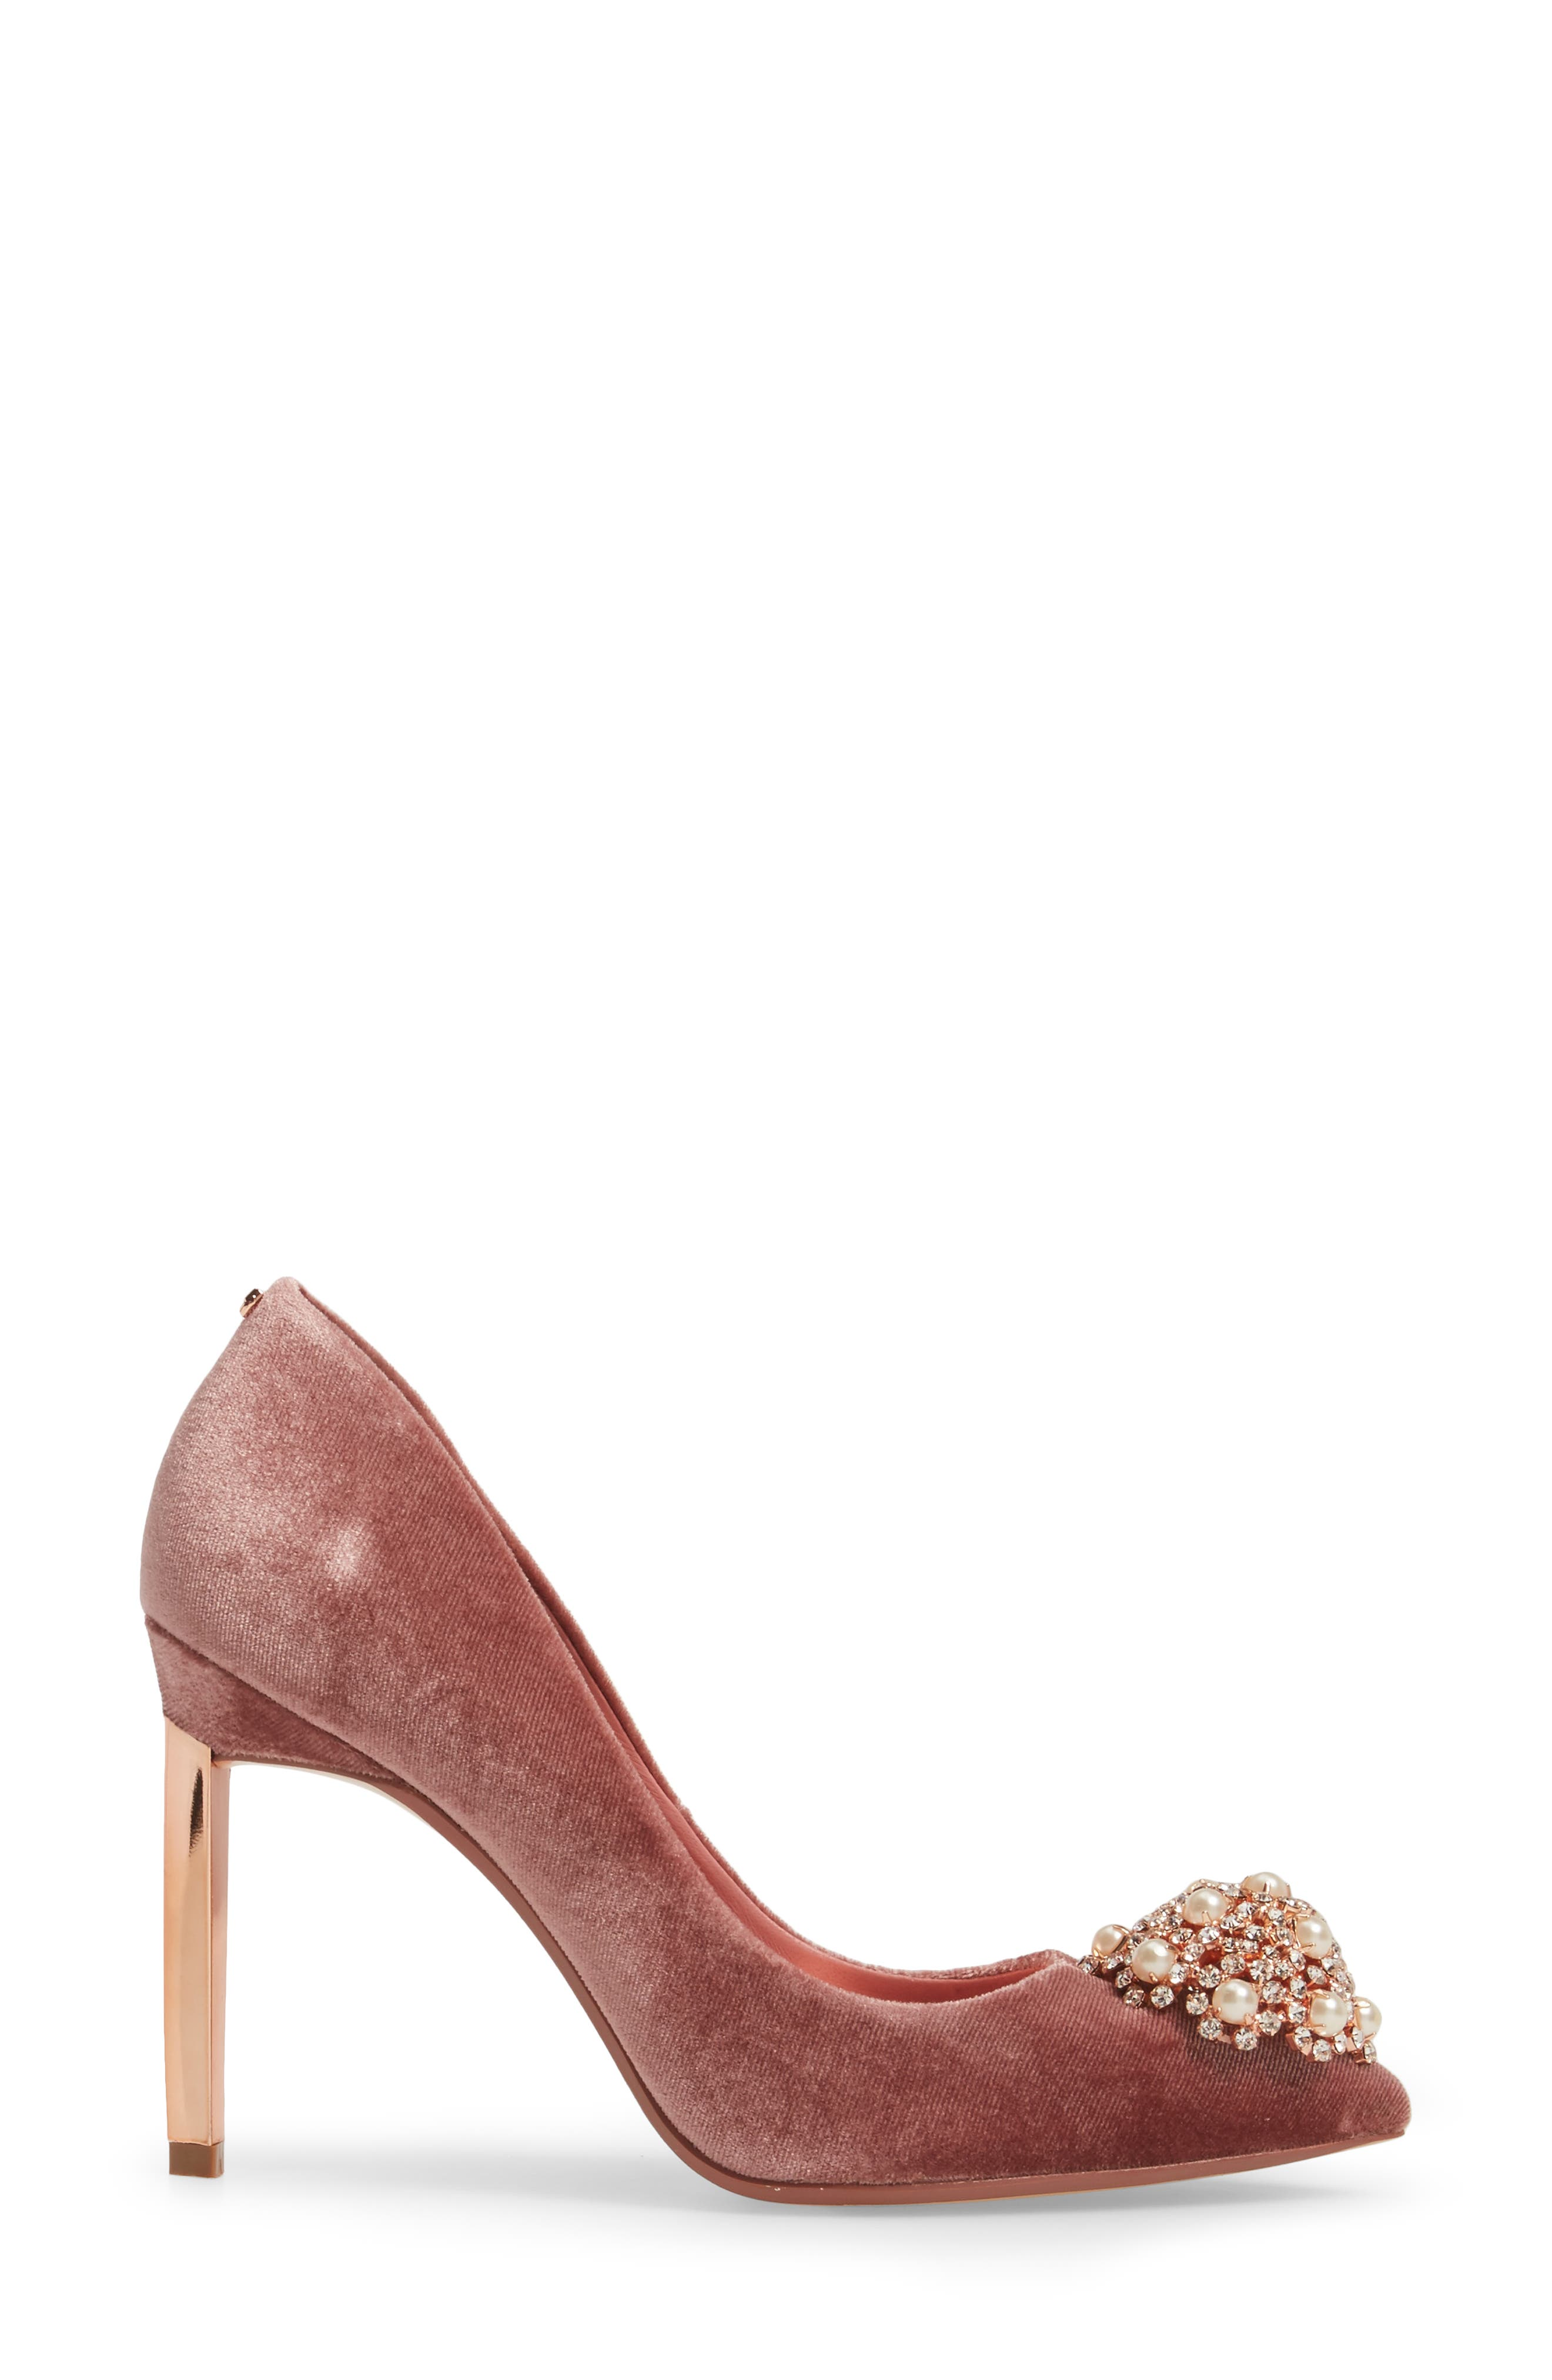 'Peetch' Pointy Toe Pump,                             Alternate thumbnail 36, color,